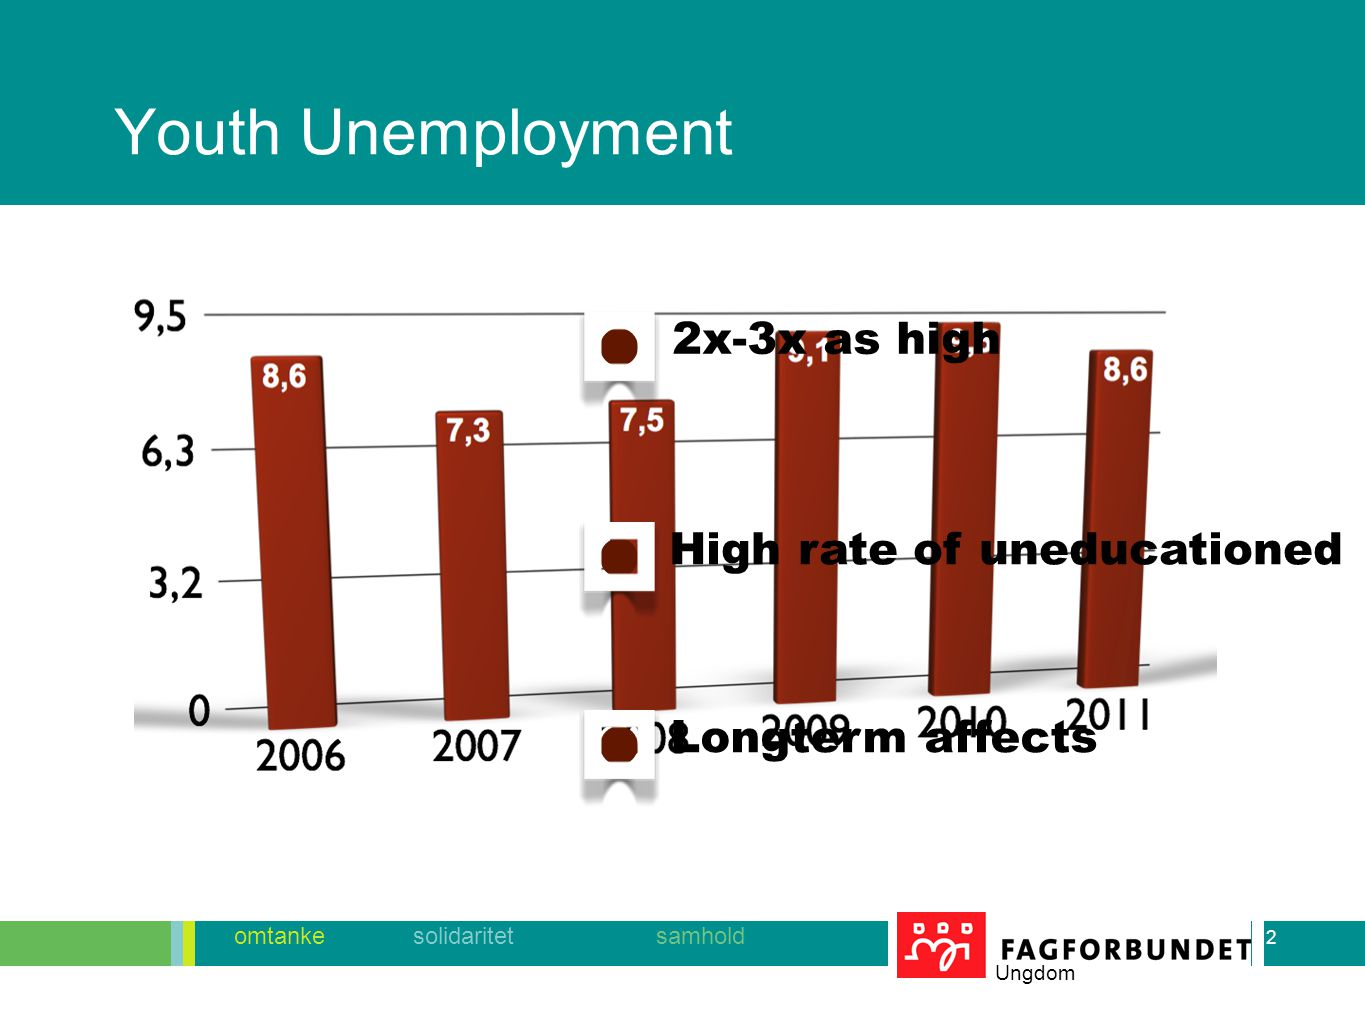 2 omtanke solidaritet samhold Ungdom Youth Unemployment 2 2x-3x as high High rate of uneducationed Longterm affects